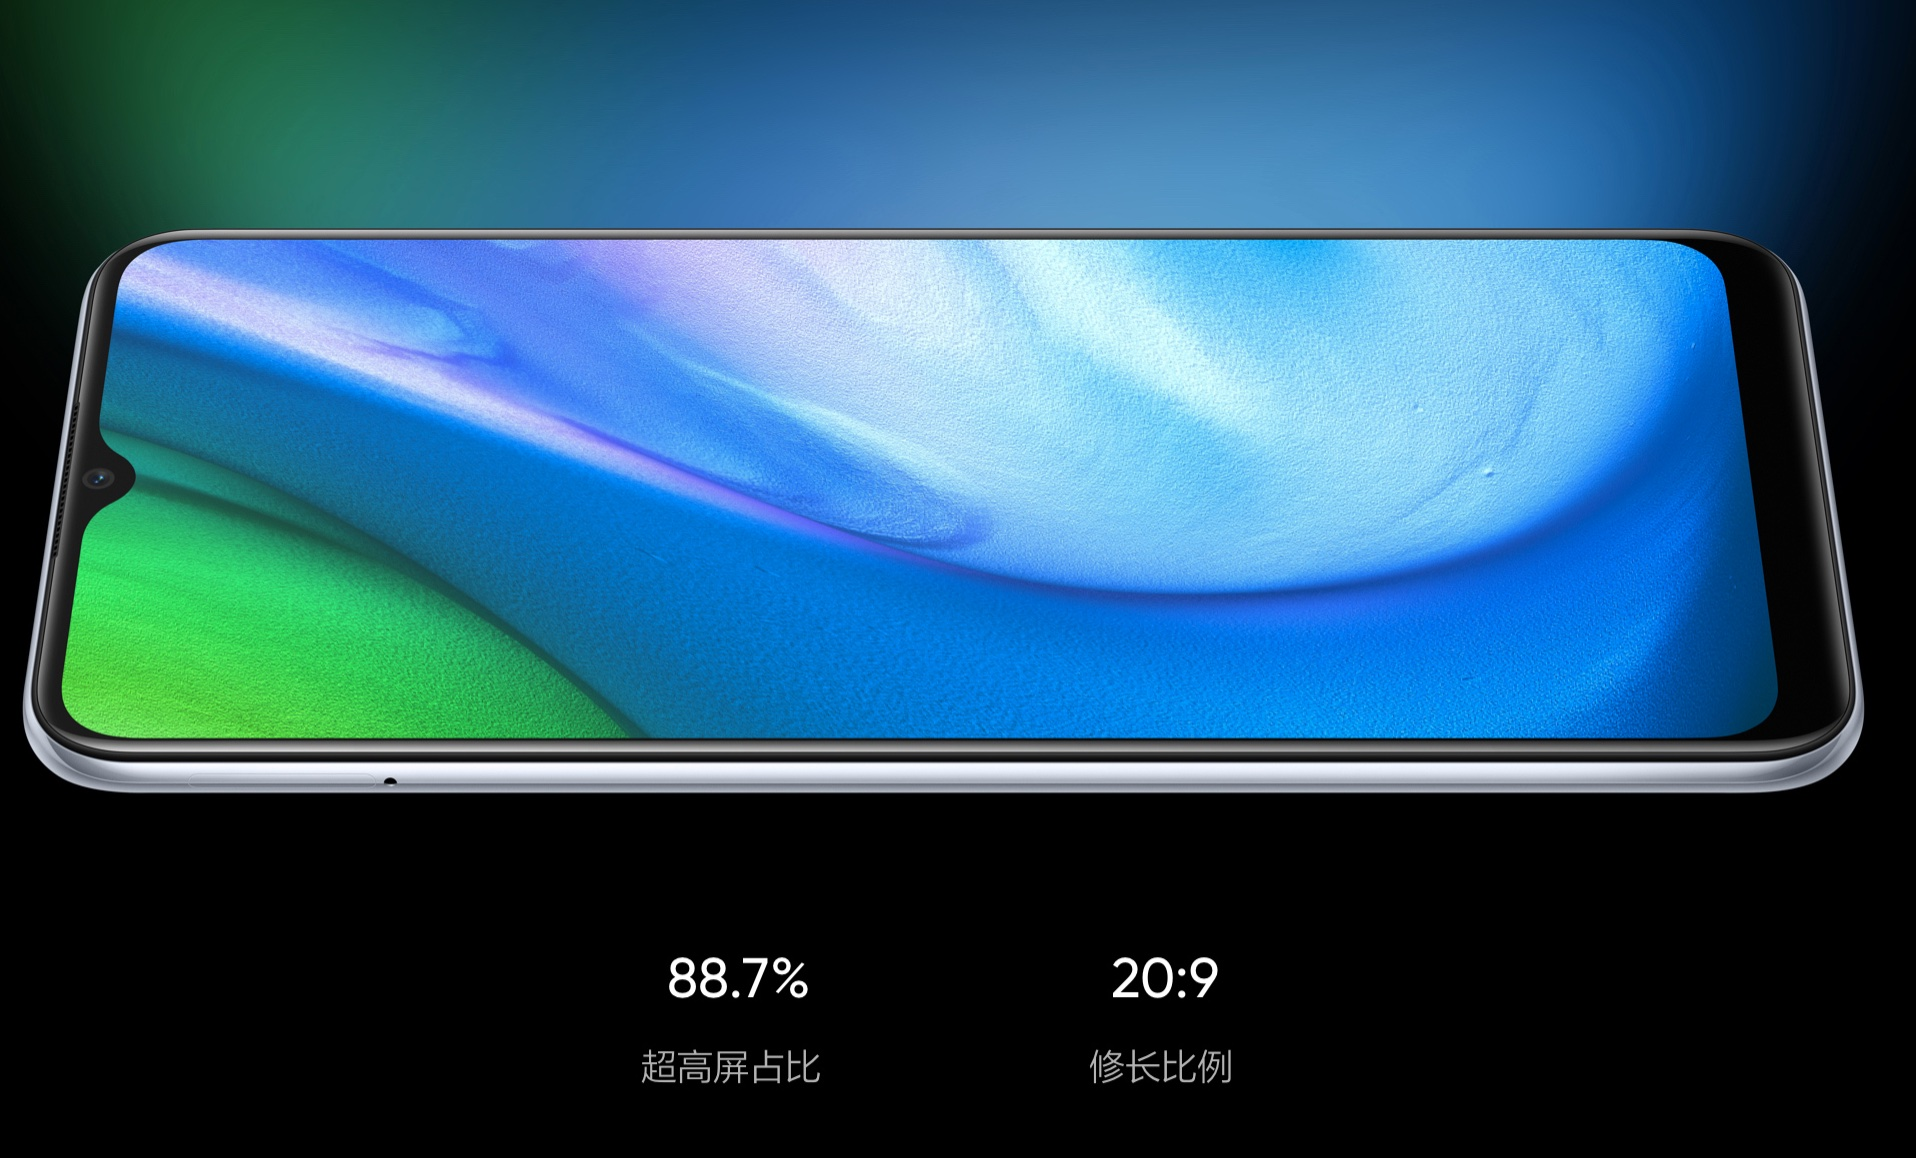 Realme unveils new 5G phone in China, brings price to under RMB 1,000 for first time-CnTechPost